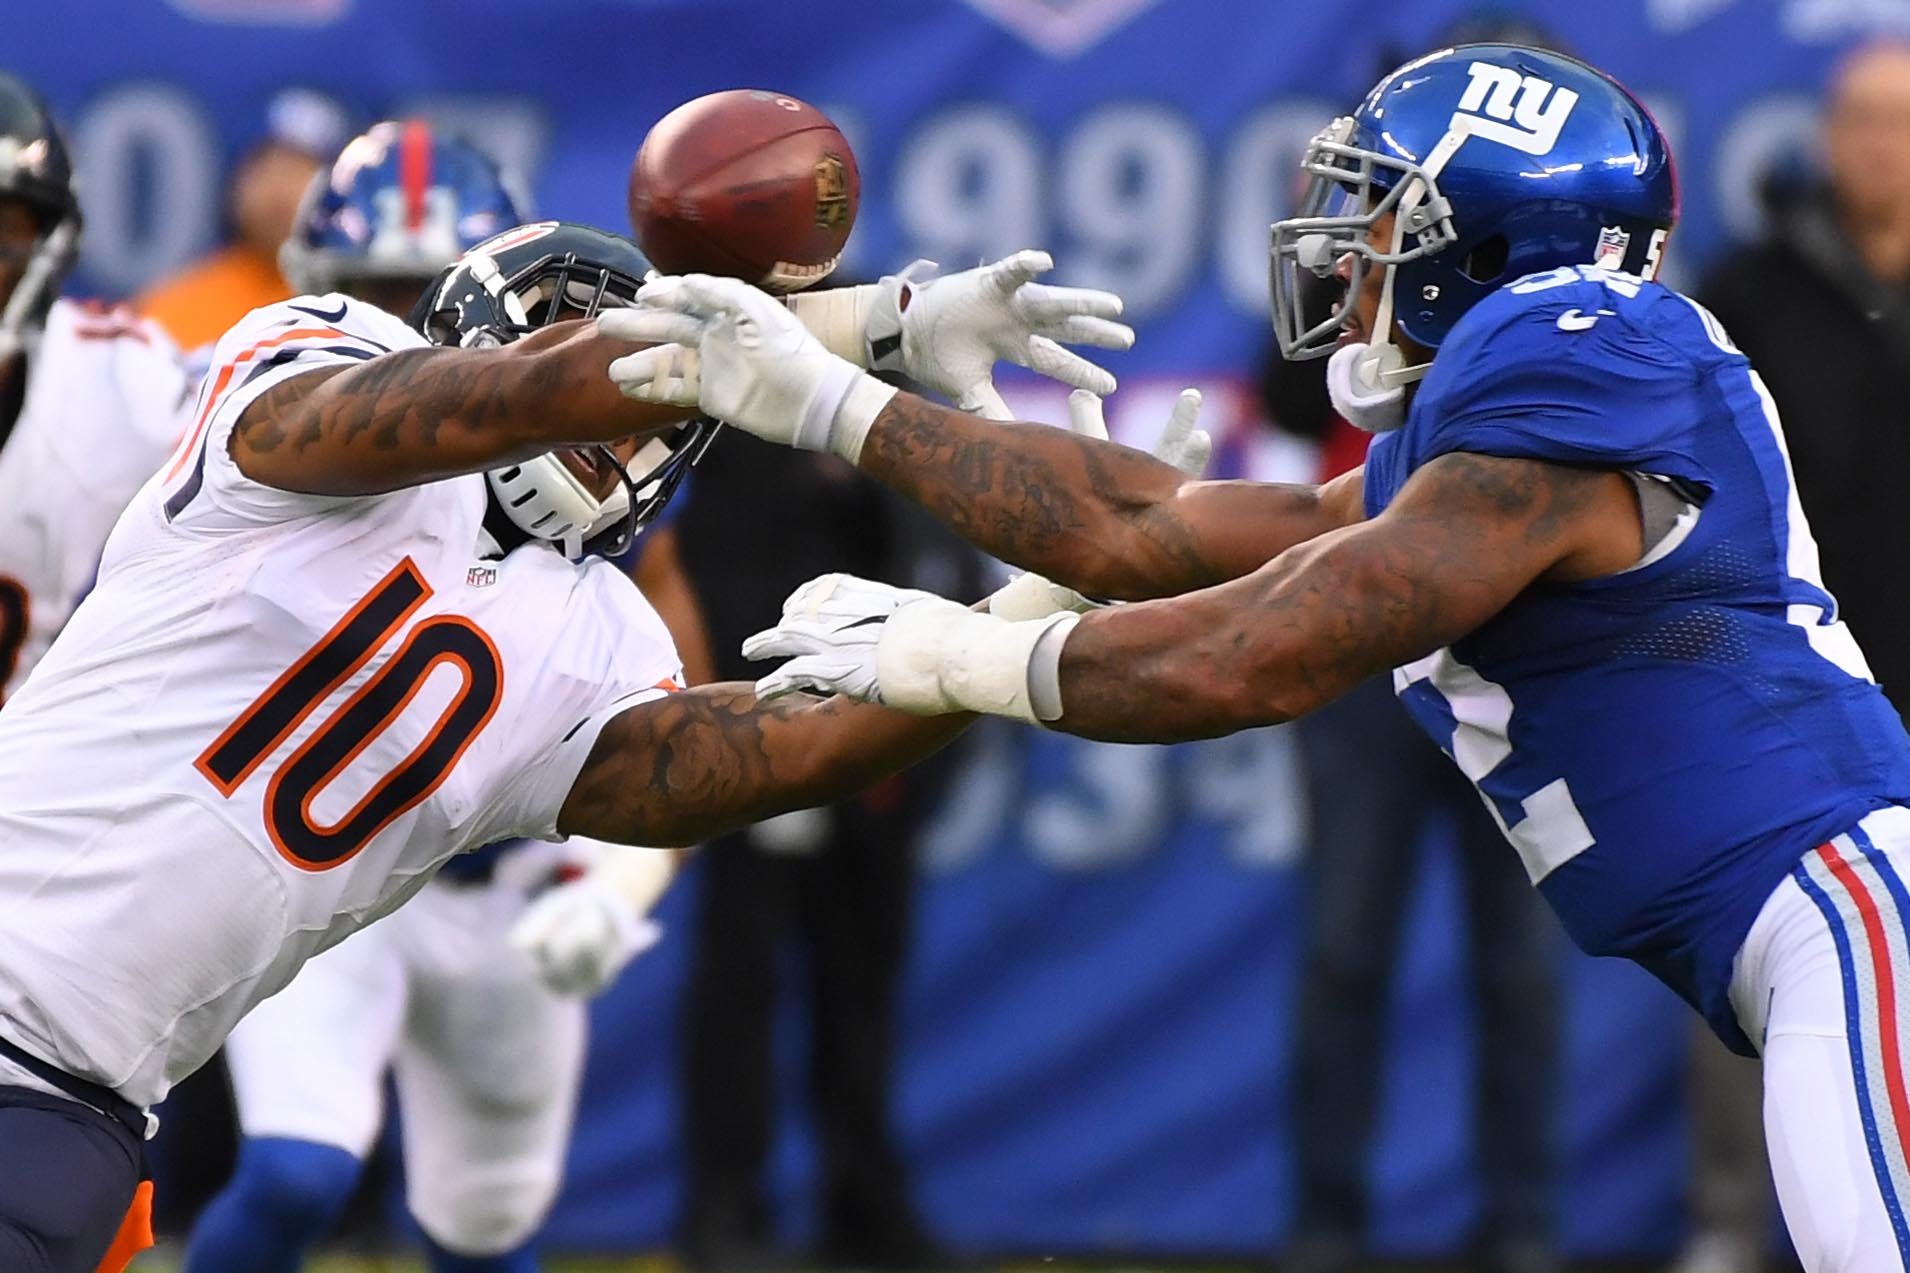 New York Giants: Pro Football Focus ranks Jonathan Casillas the worst player in Week 12